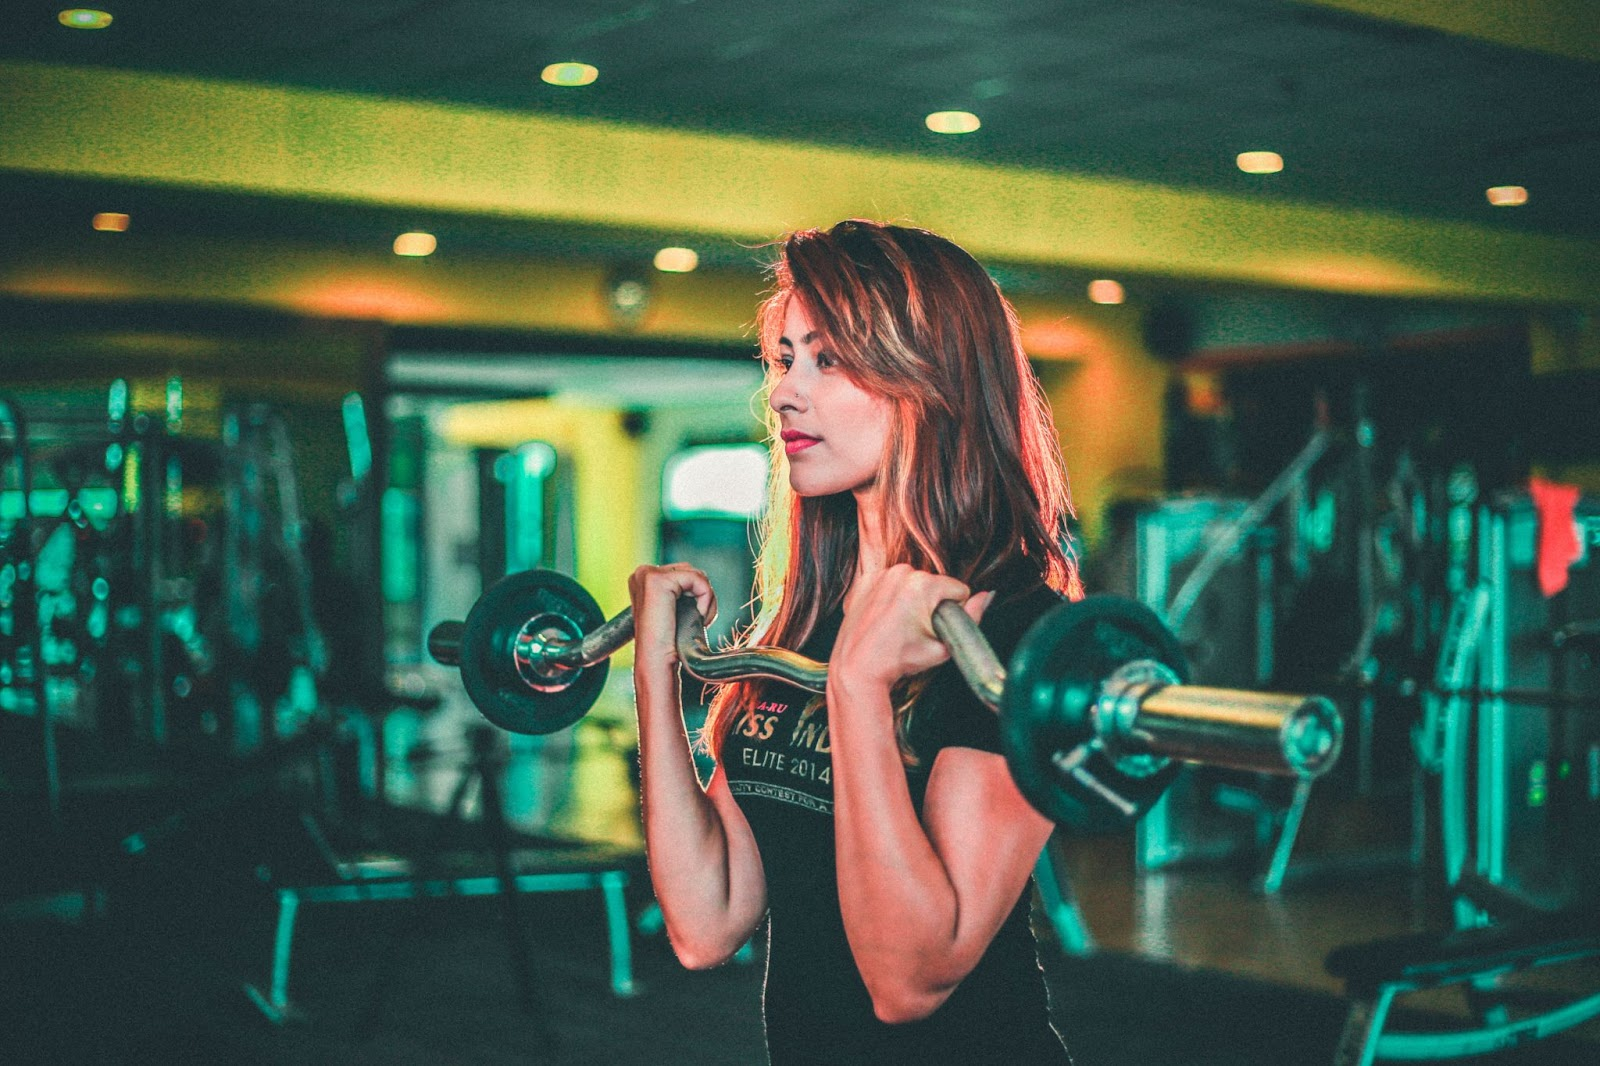 What Do You Need to Become an Online Fitness Trainer?